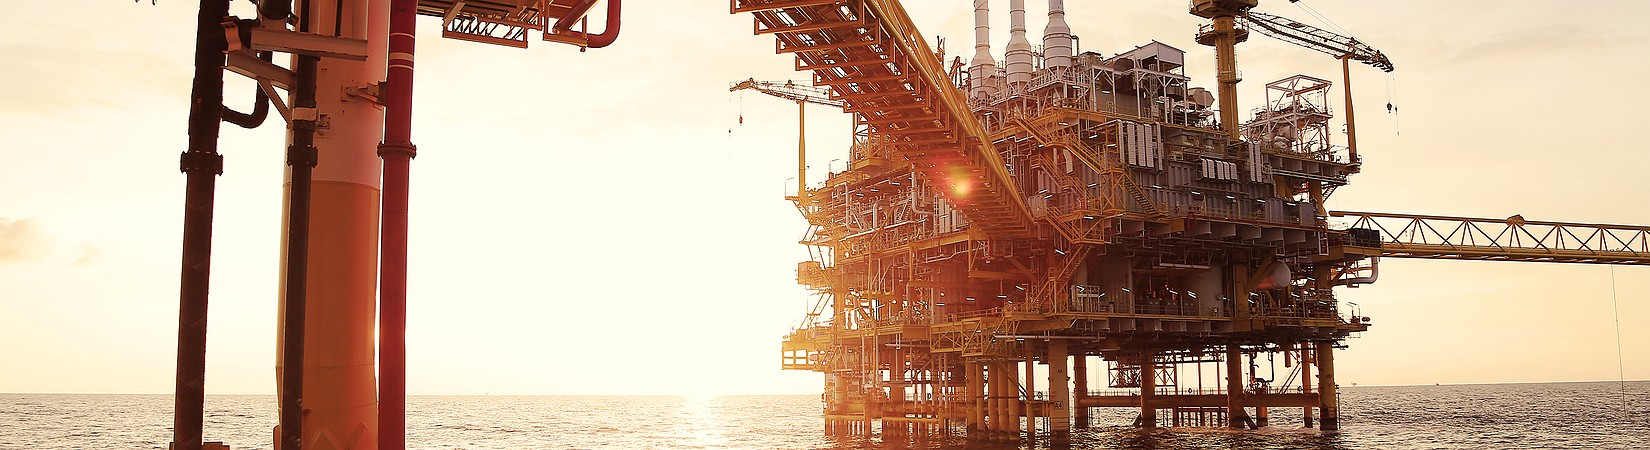 Libya's largest oil field production rebound drops oil prices